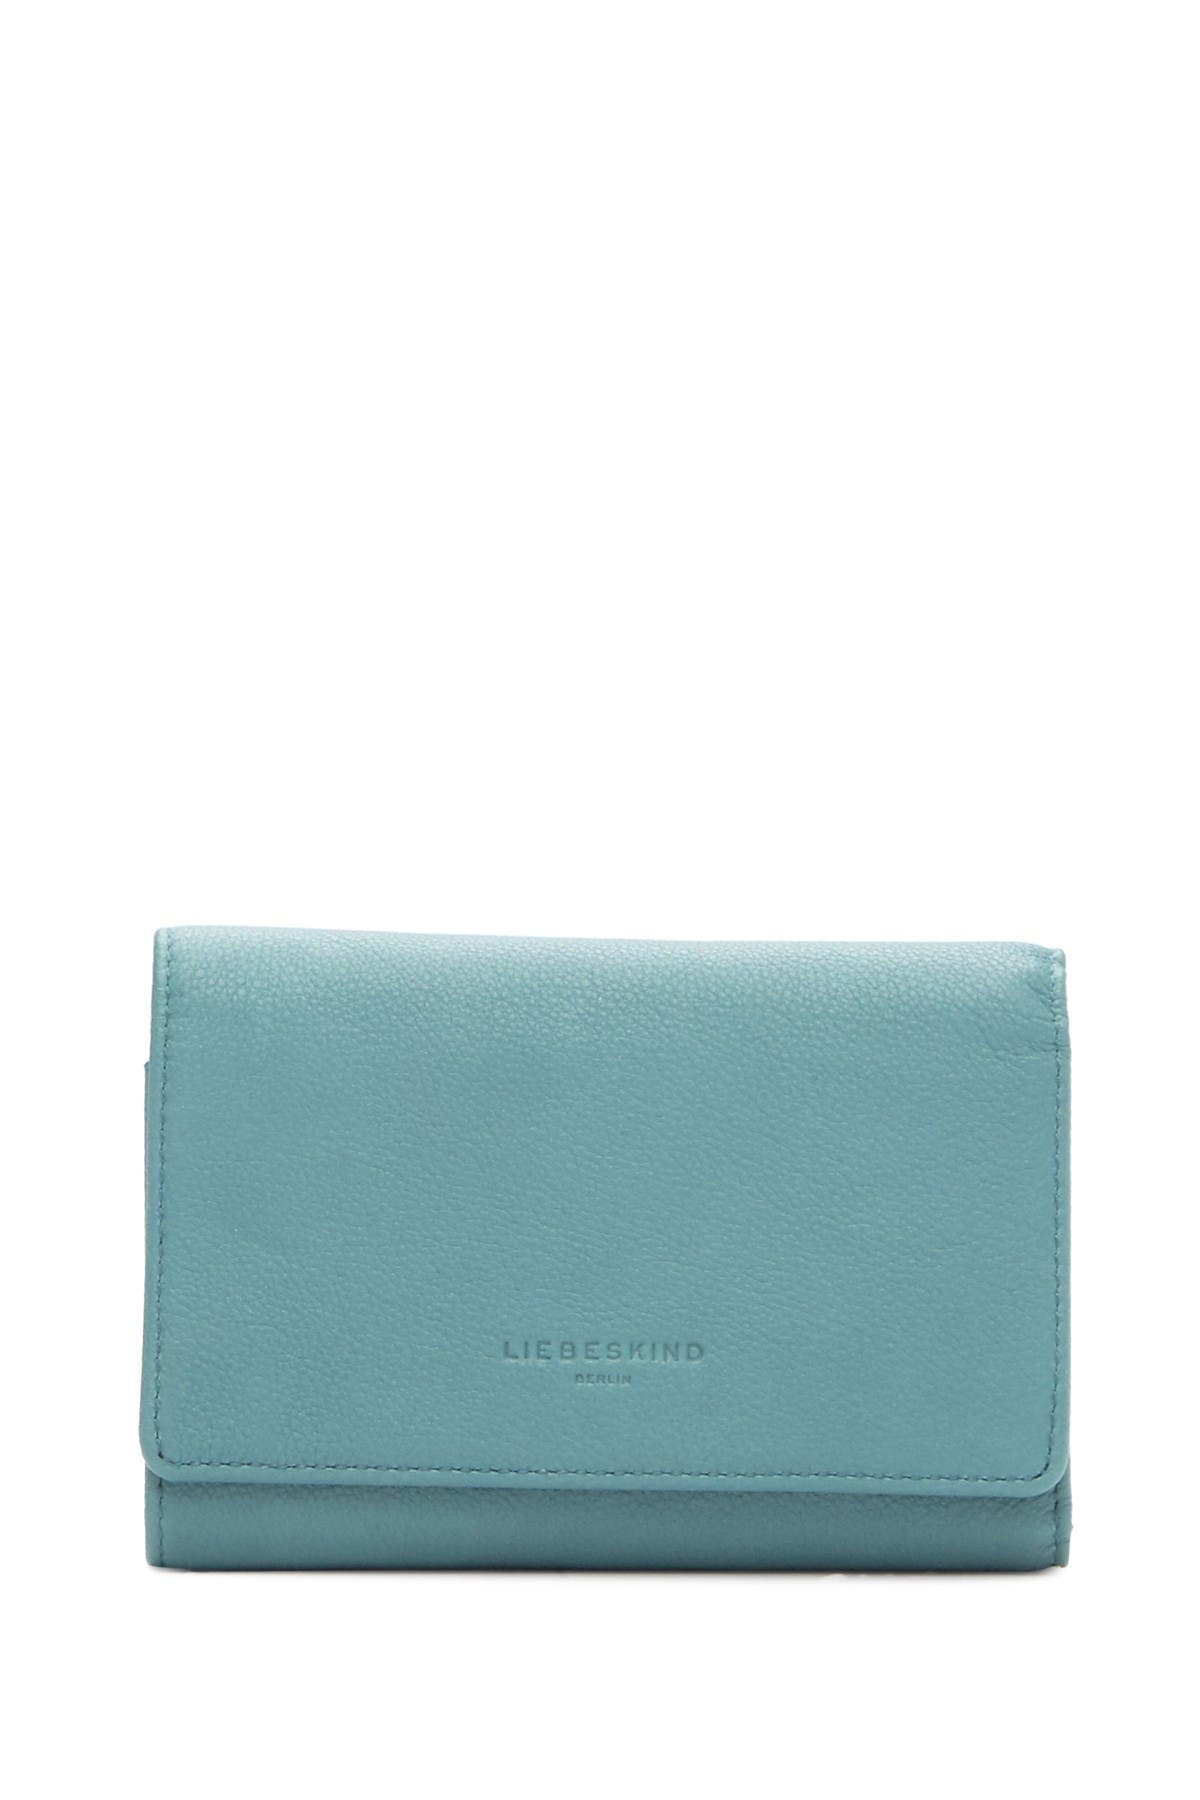 Image of Liebeskind Berlin Vintage Piper Trifold Leather Wallet